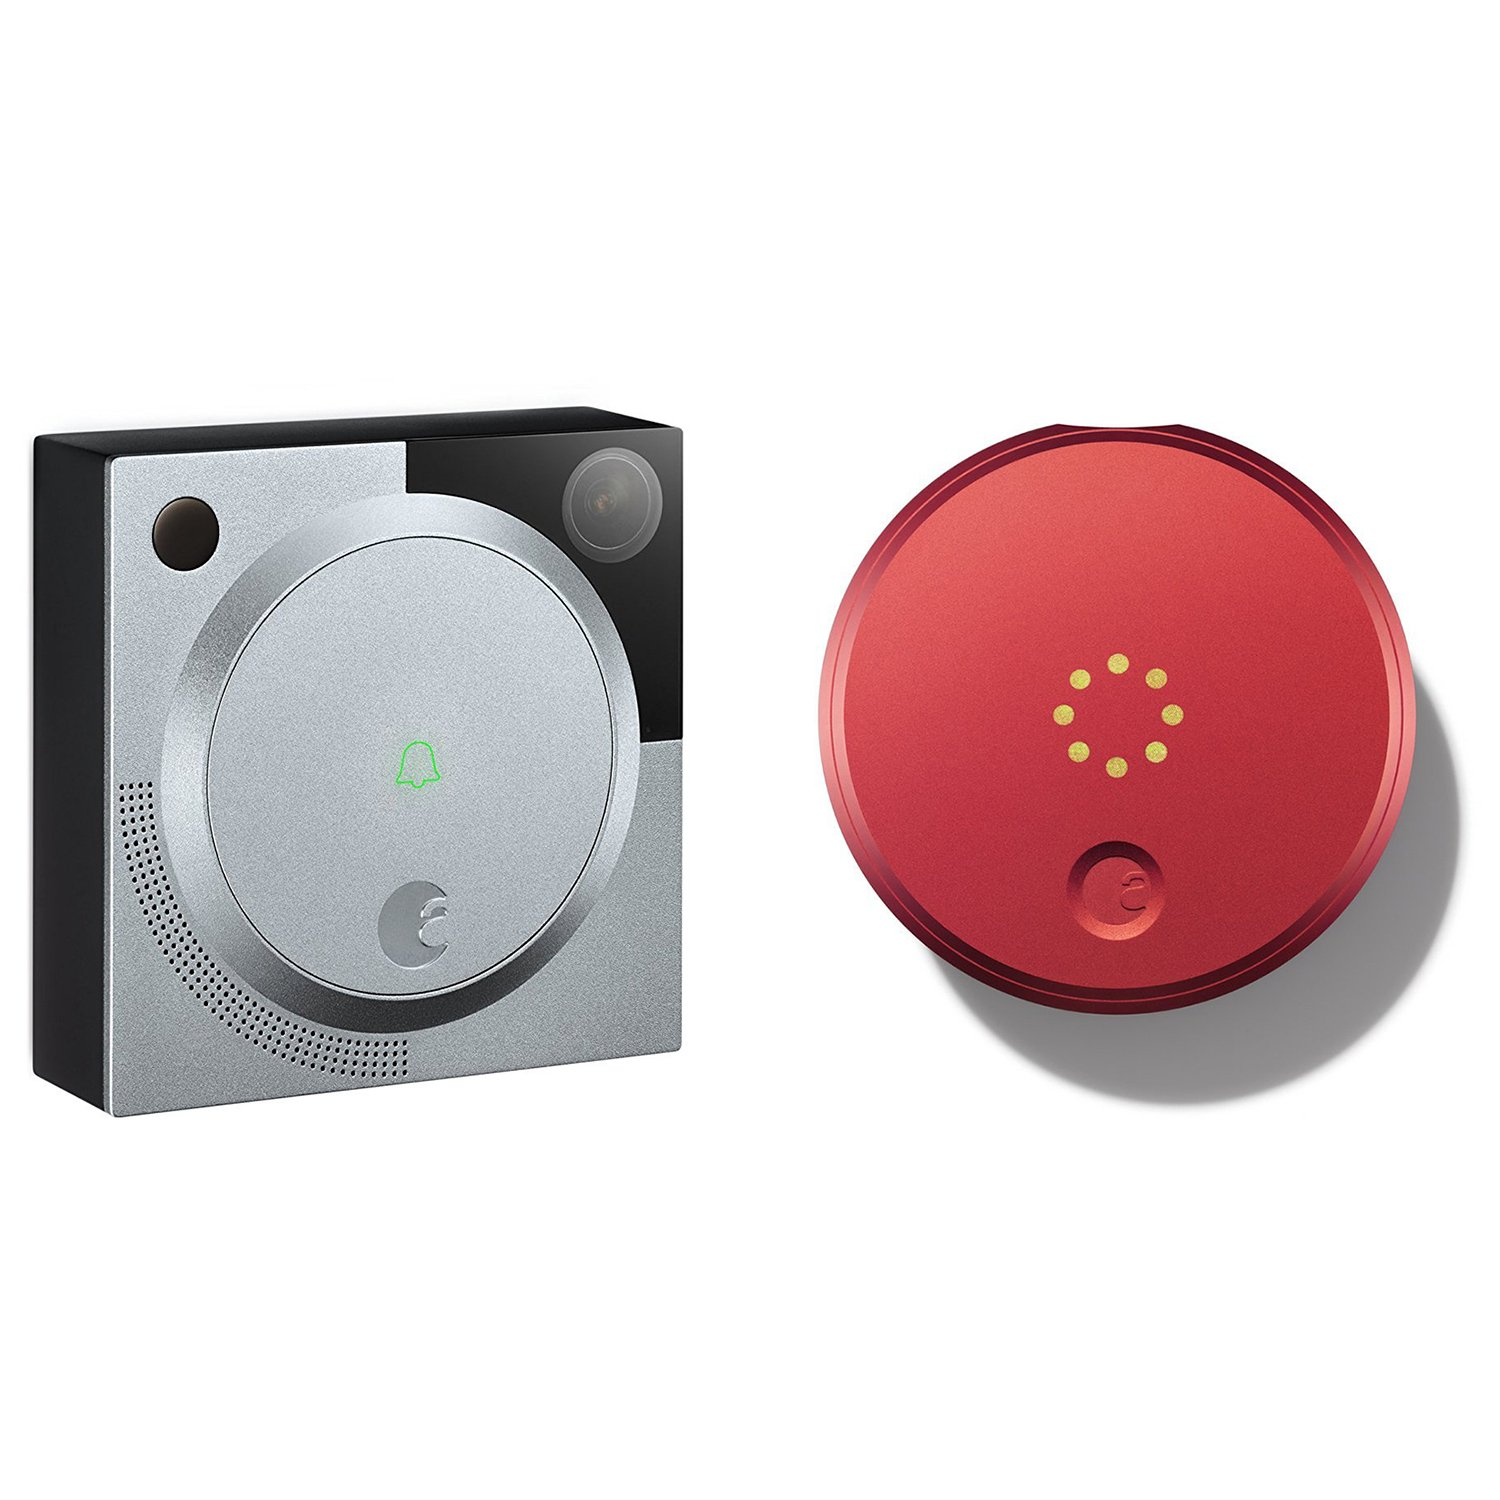 August Smart Lock and HD Doorbell Camera Wireless Entry System - 1st Gen Red/Silver